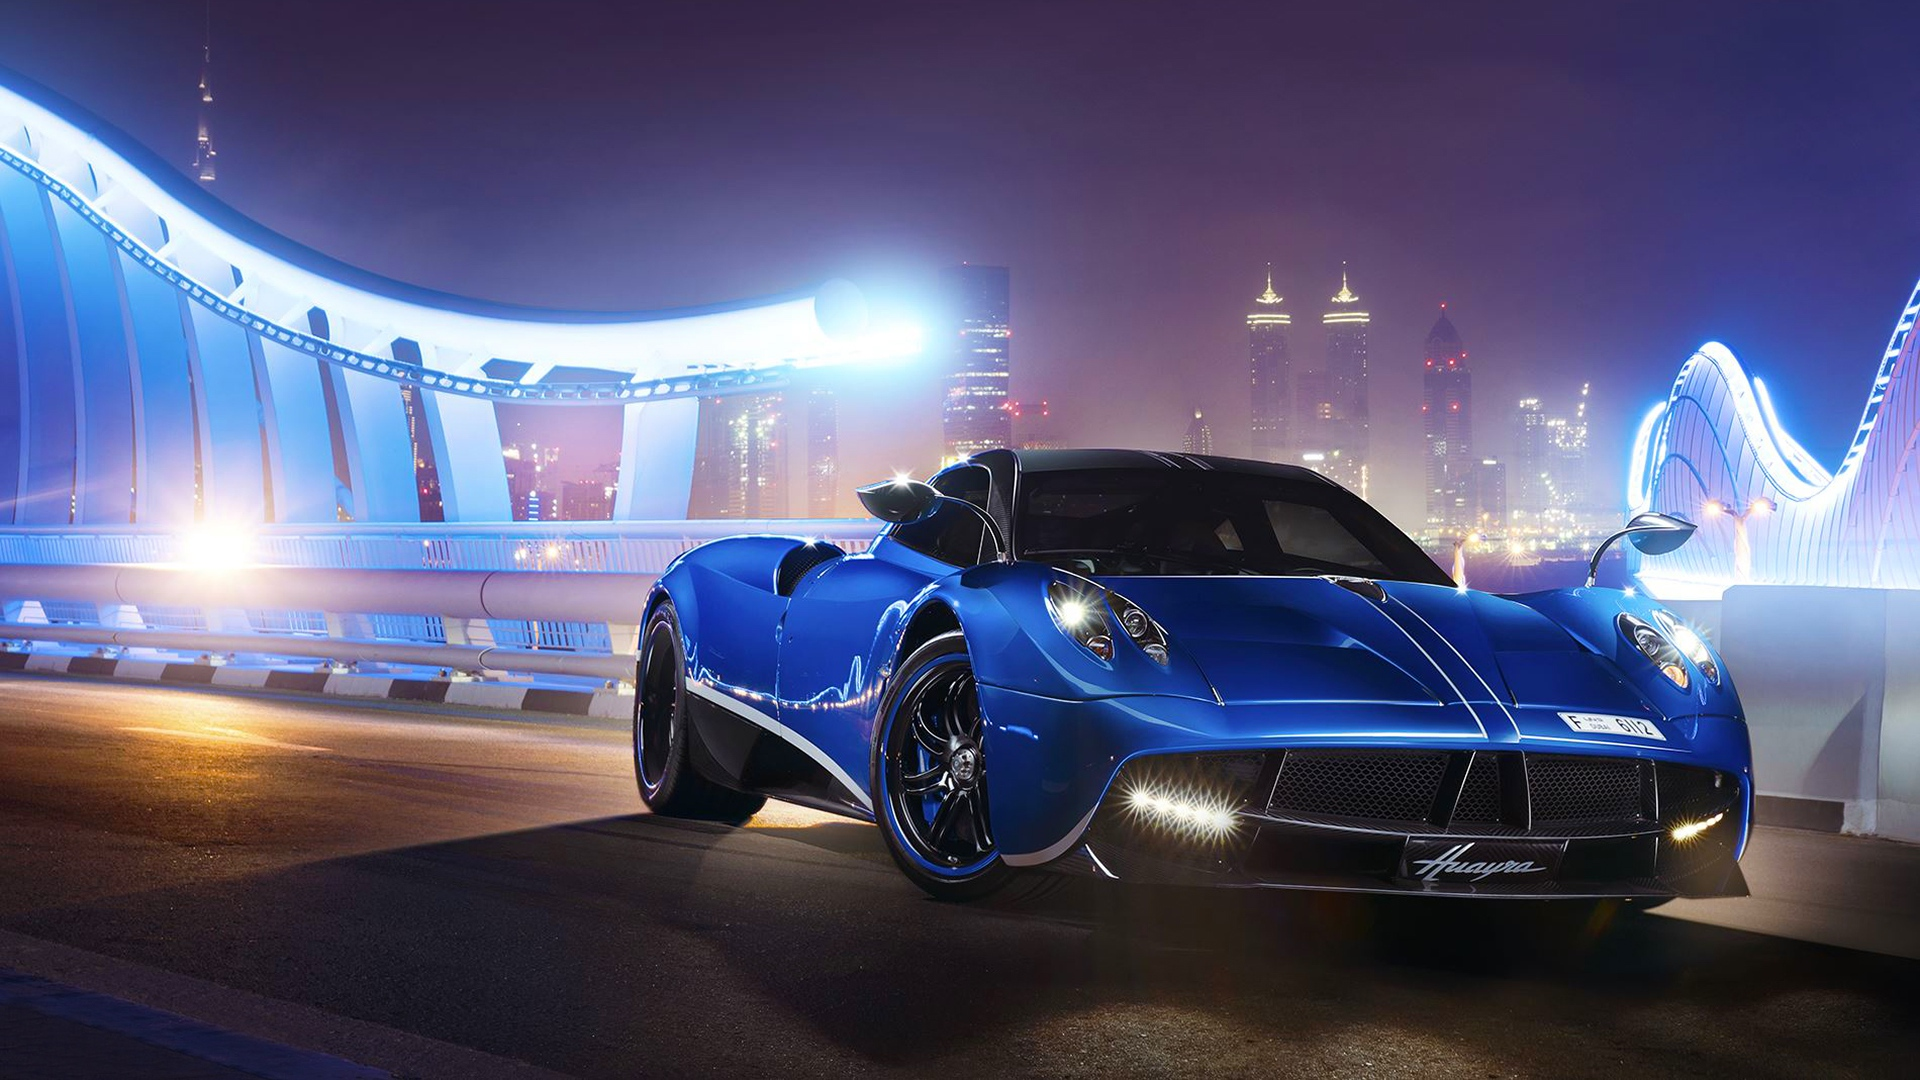 Wallpaper pagani huayra dubai sports car highway luxury night 1920x1080